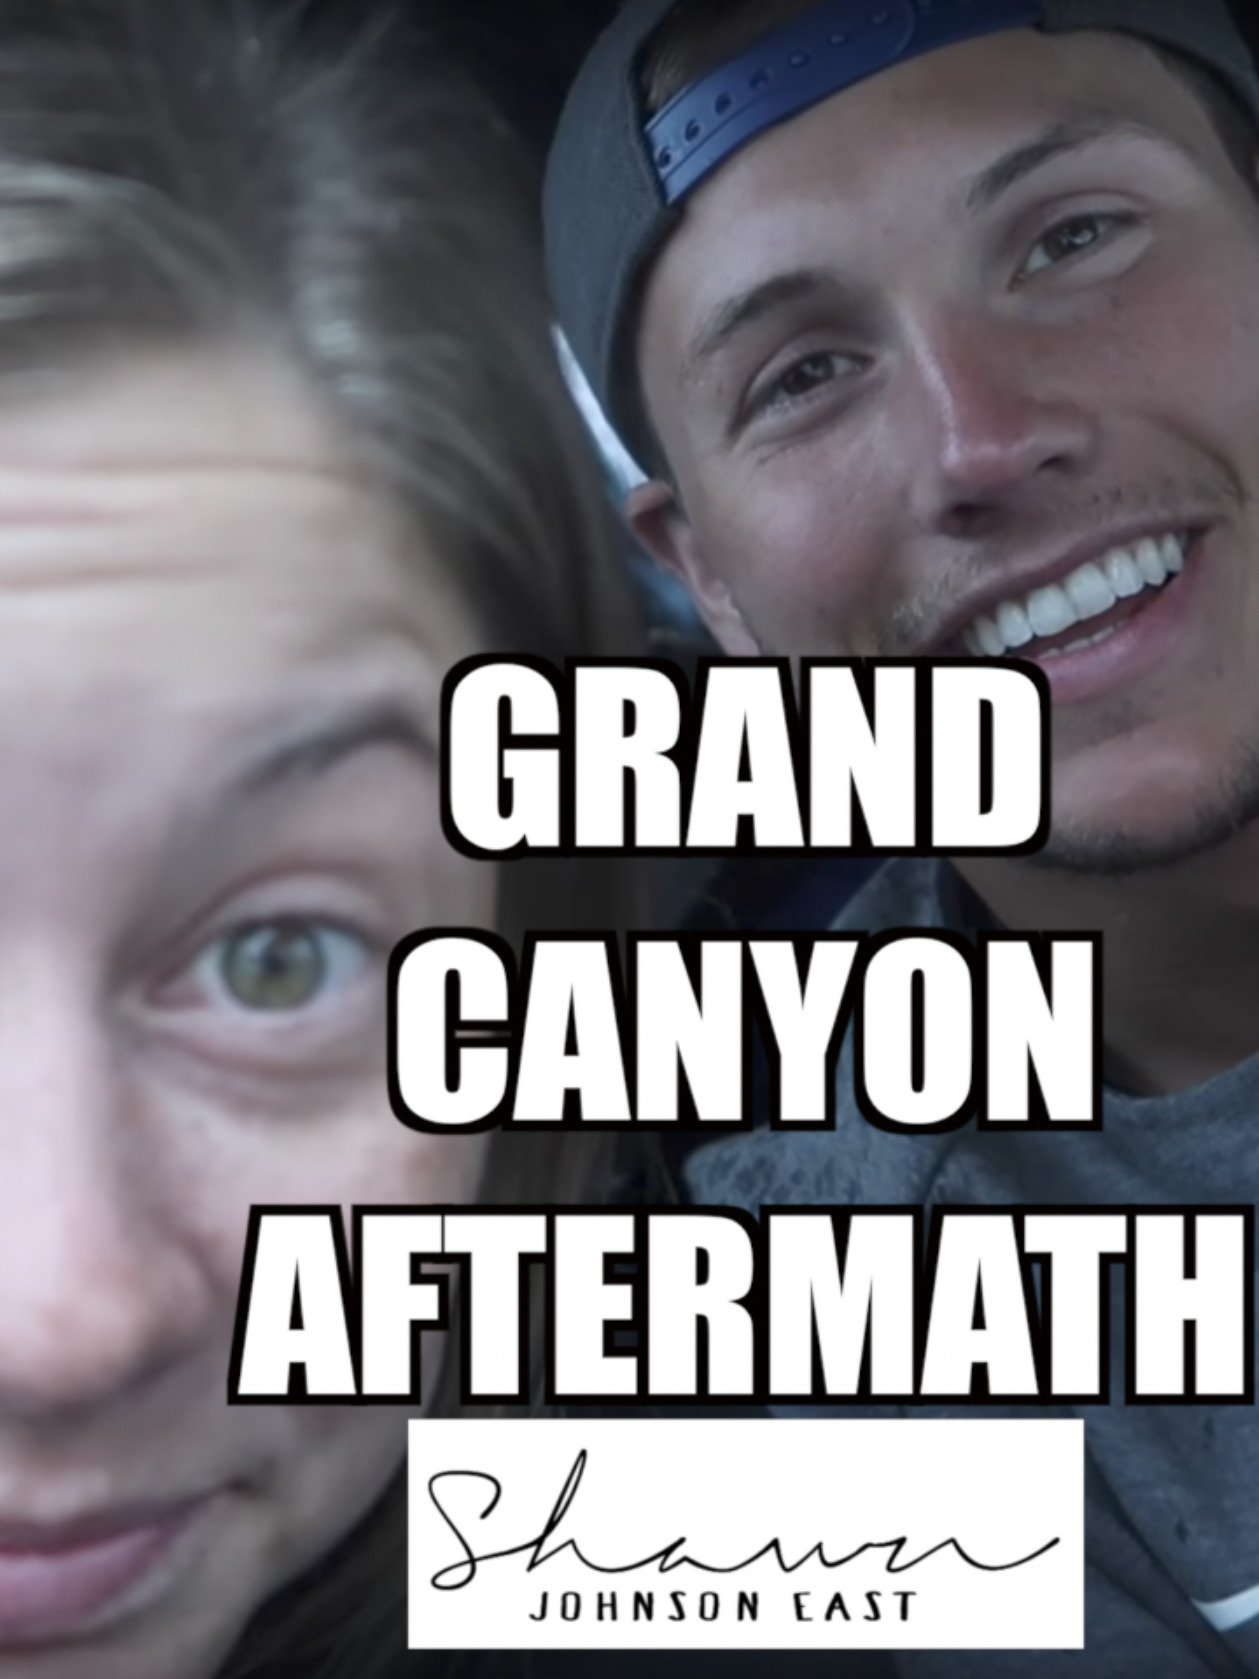 Grand Canyon Aftermath